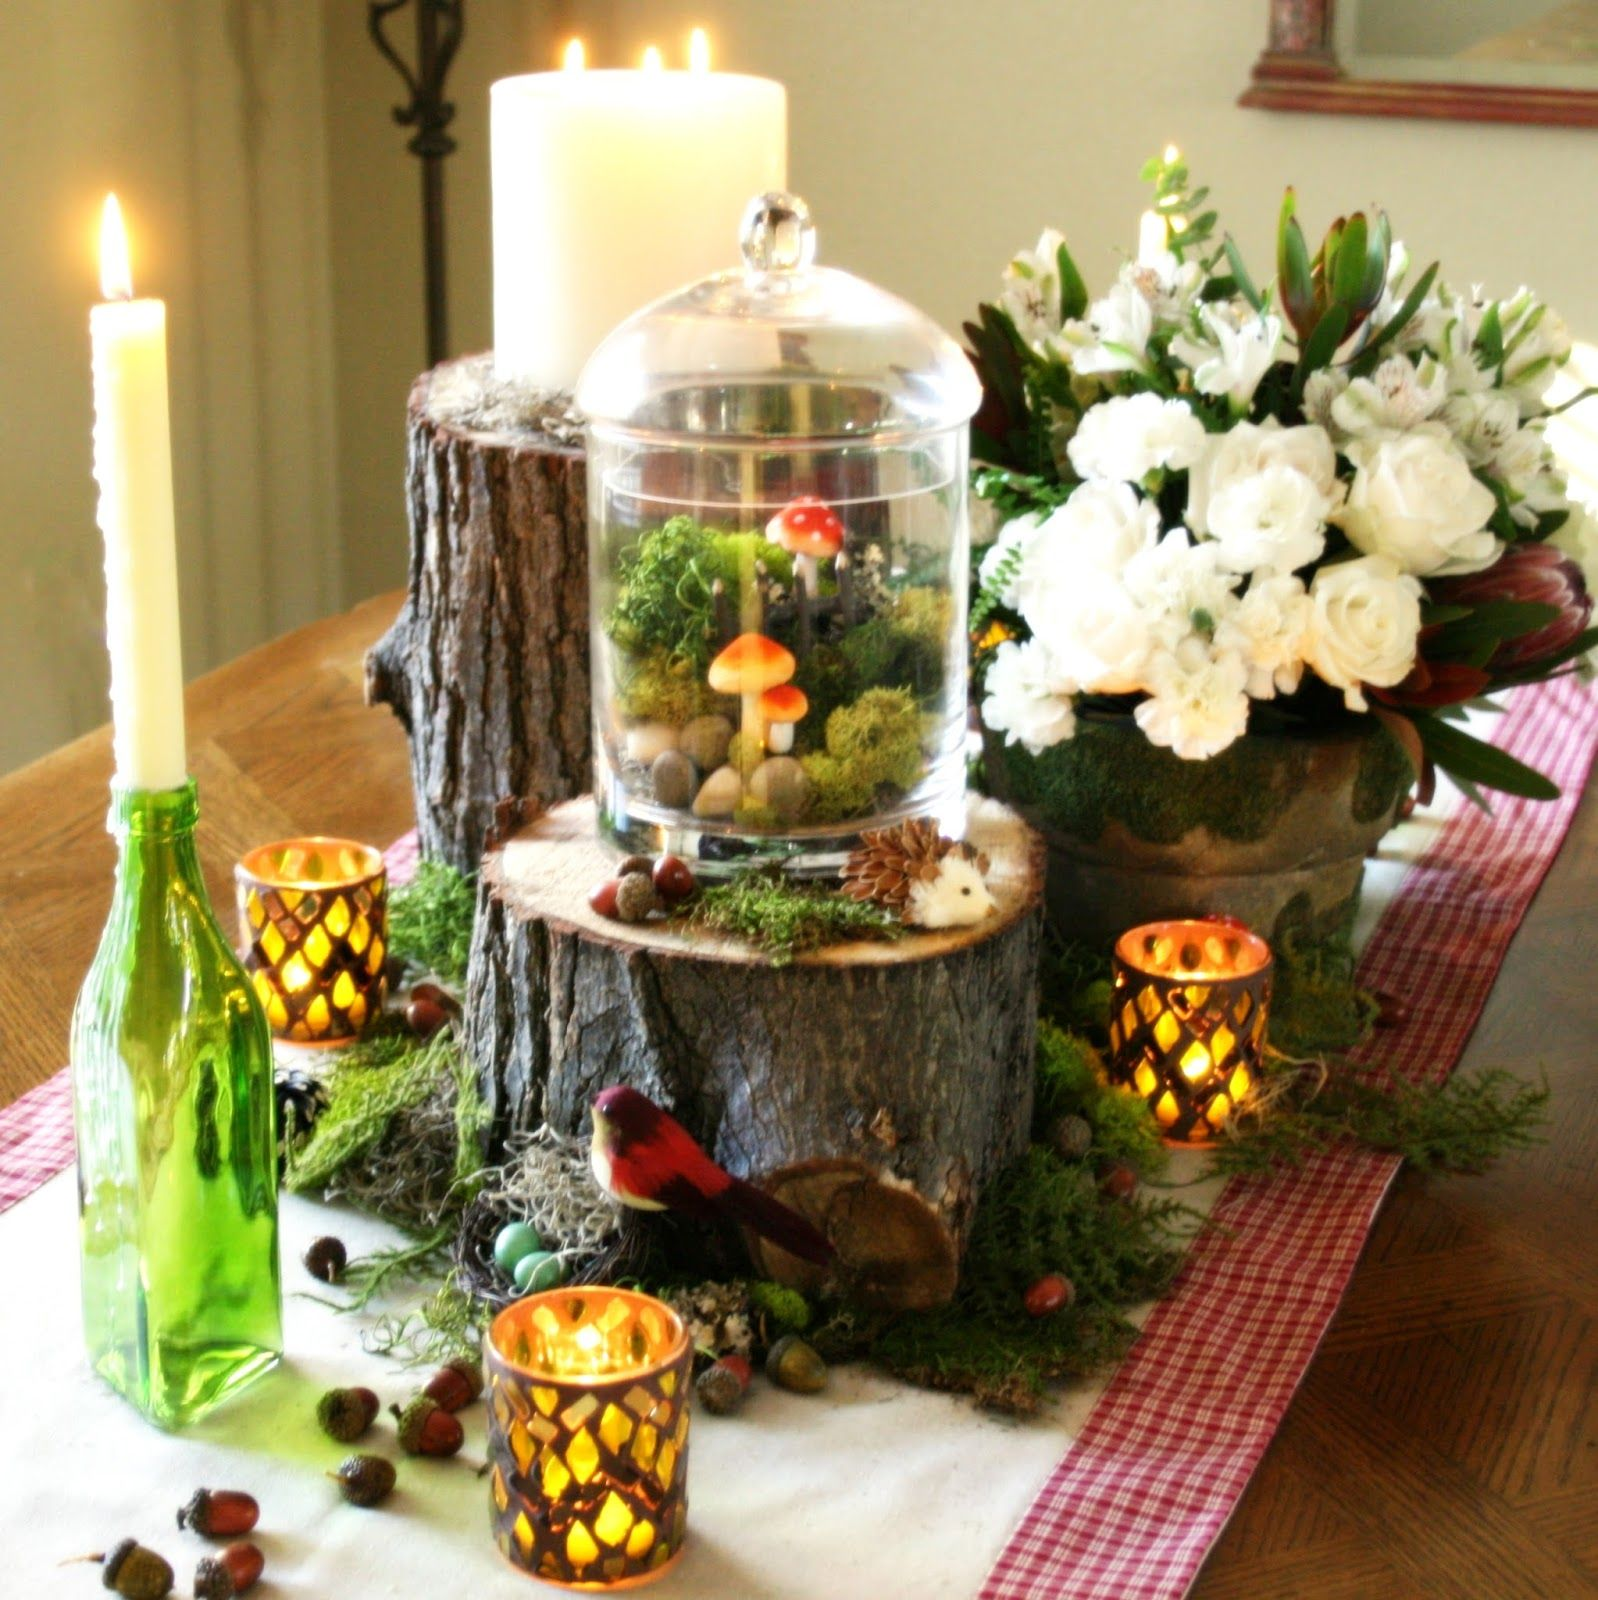 Woodland theme table decor Link to blog with more detailed photos